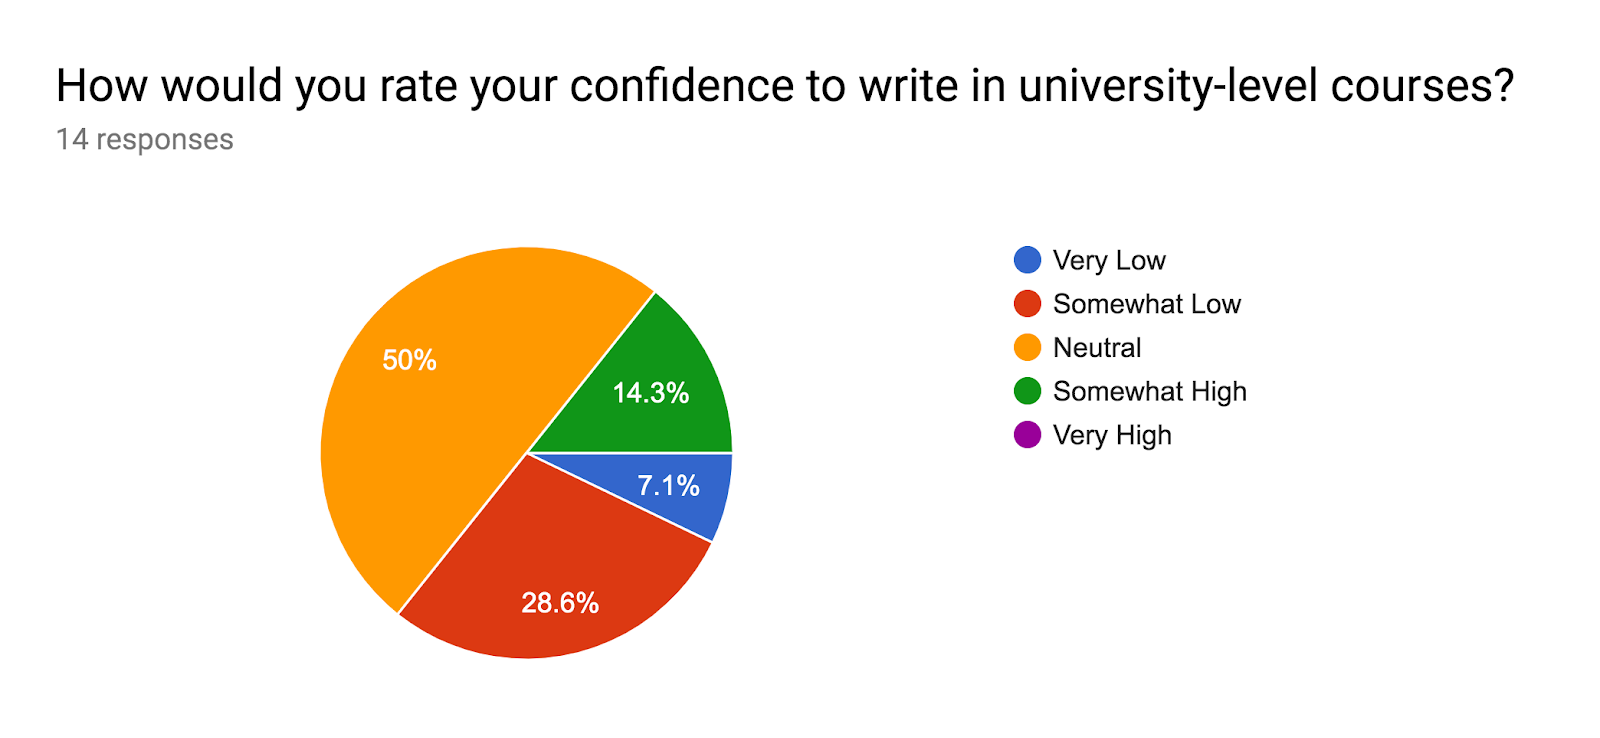 Forms response chart. Question title: How would you rate your confidence to write in university-level courses?. Number of responses: 14 responses.